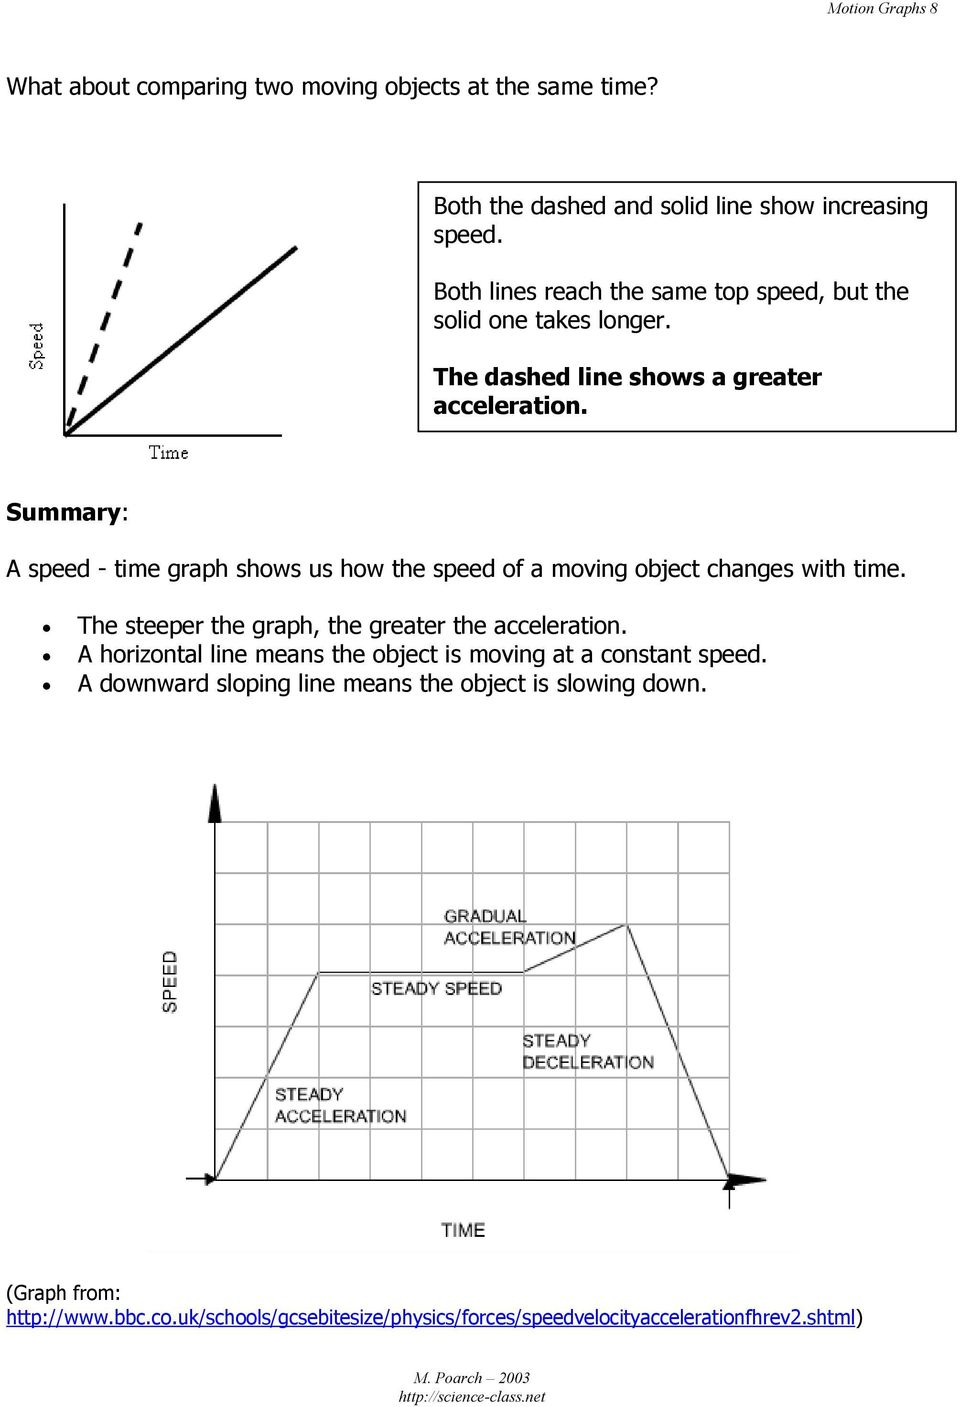 Summary: A speed - time graph shows us how the speed of a moving object changes with time. The steeper the graph, the greater the acceleration.